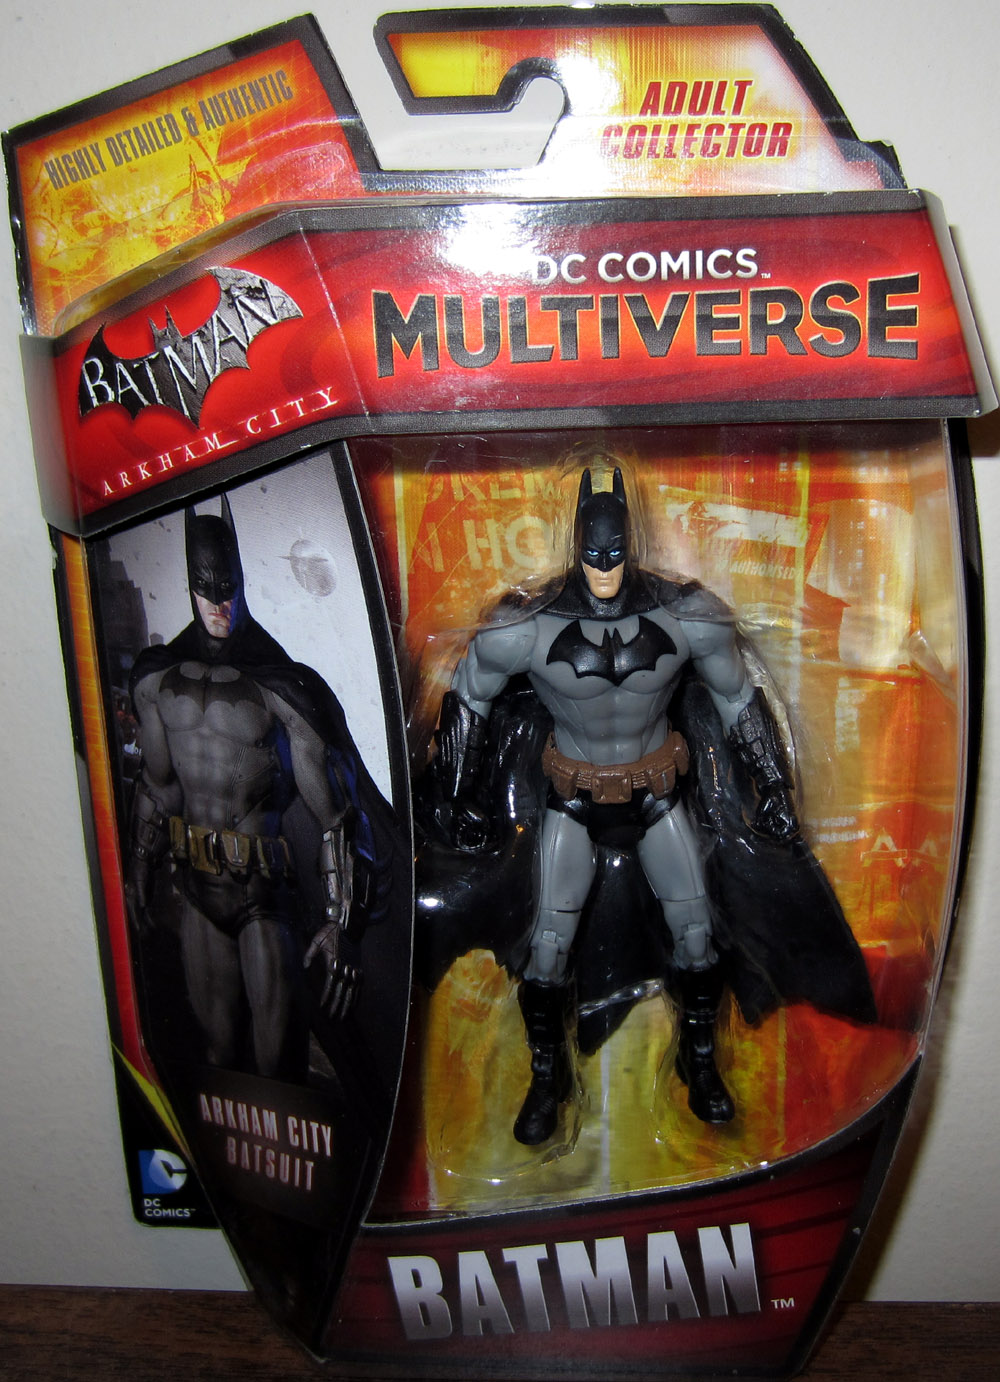 Batman (DC Comics Multiverse)